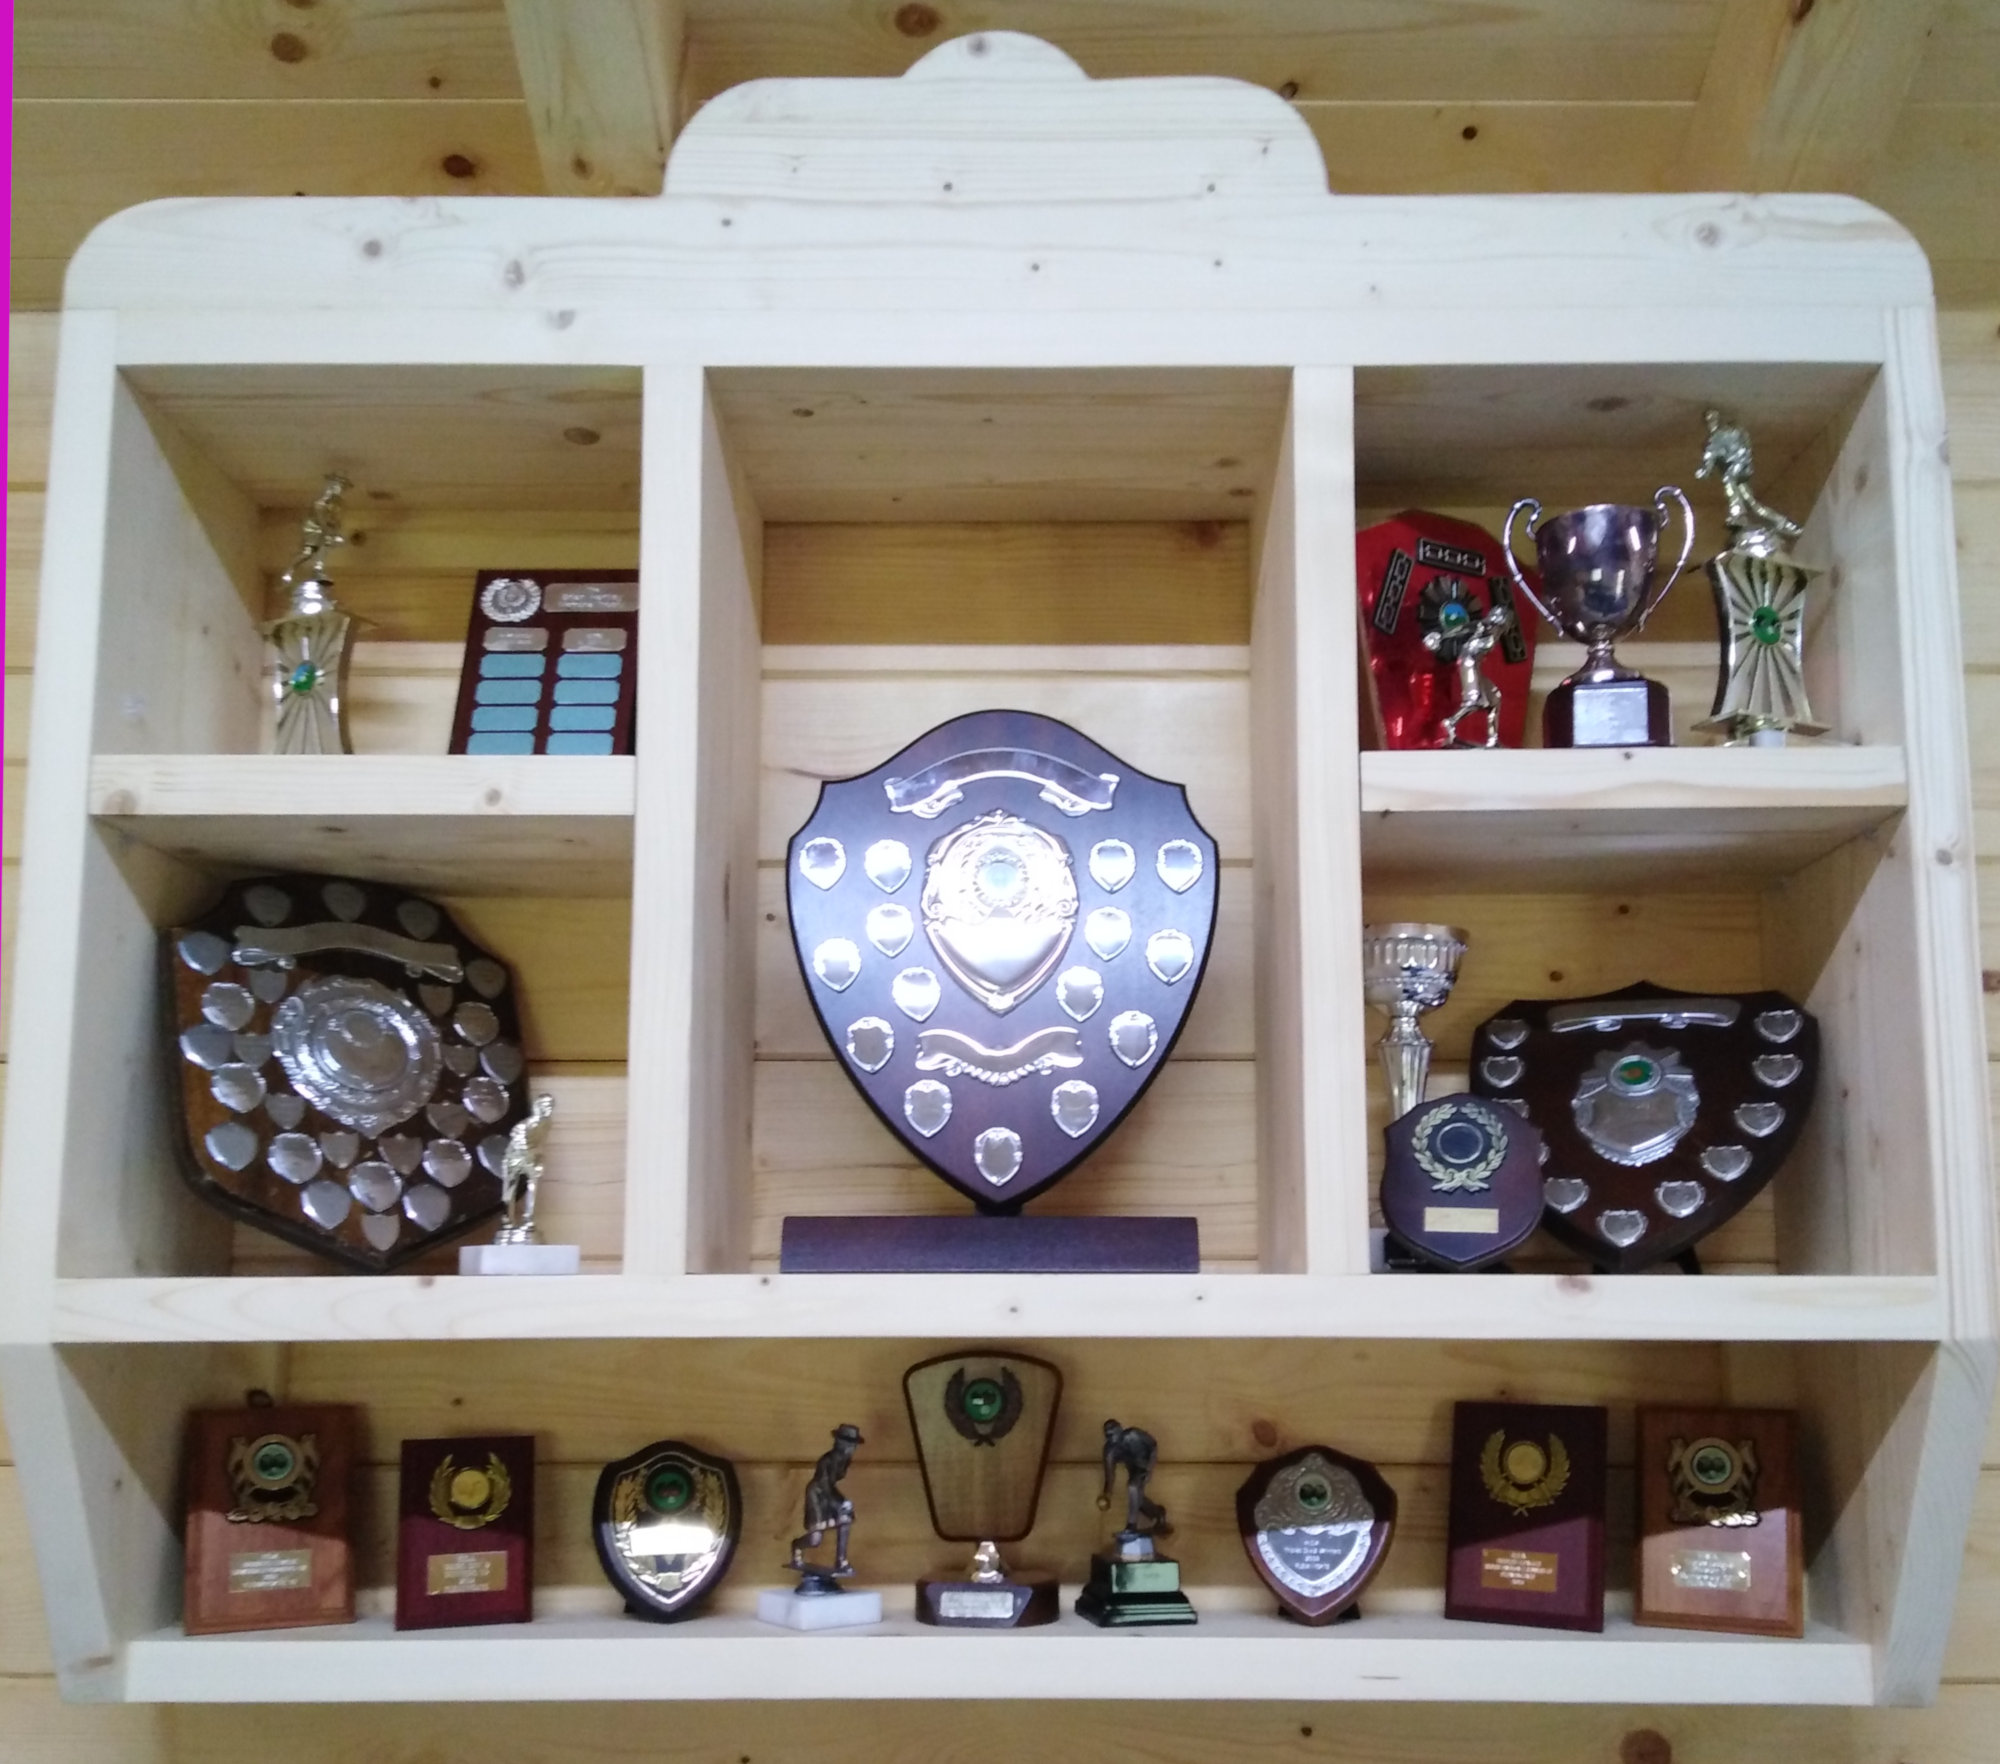 Bowling Trophies and Cups won by Flemingate Bowling Club in East Yorkshire.